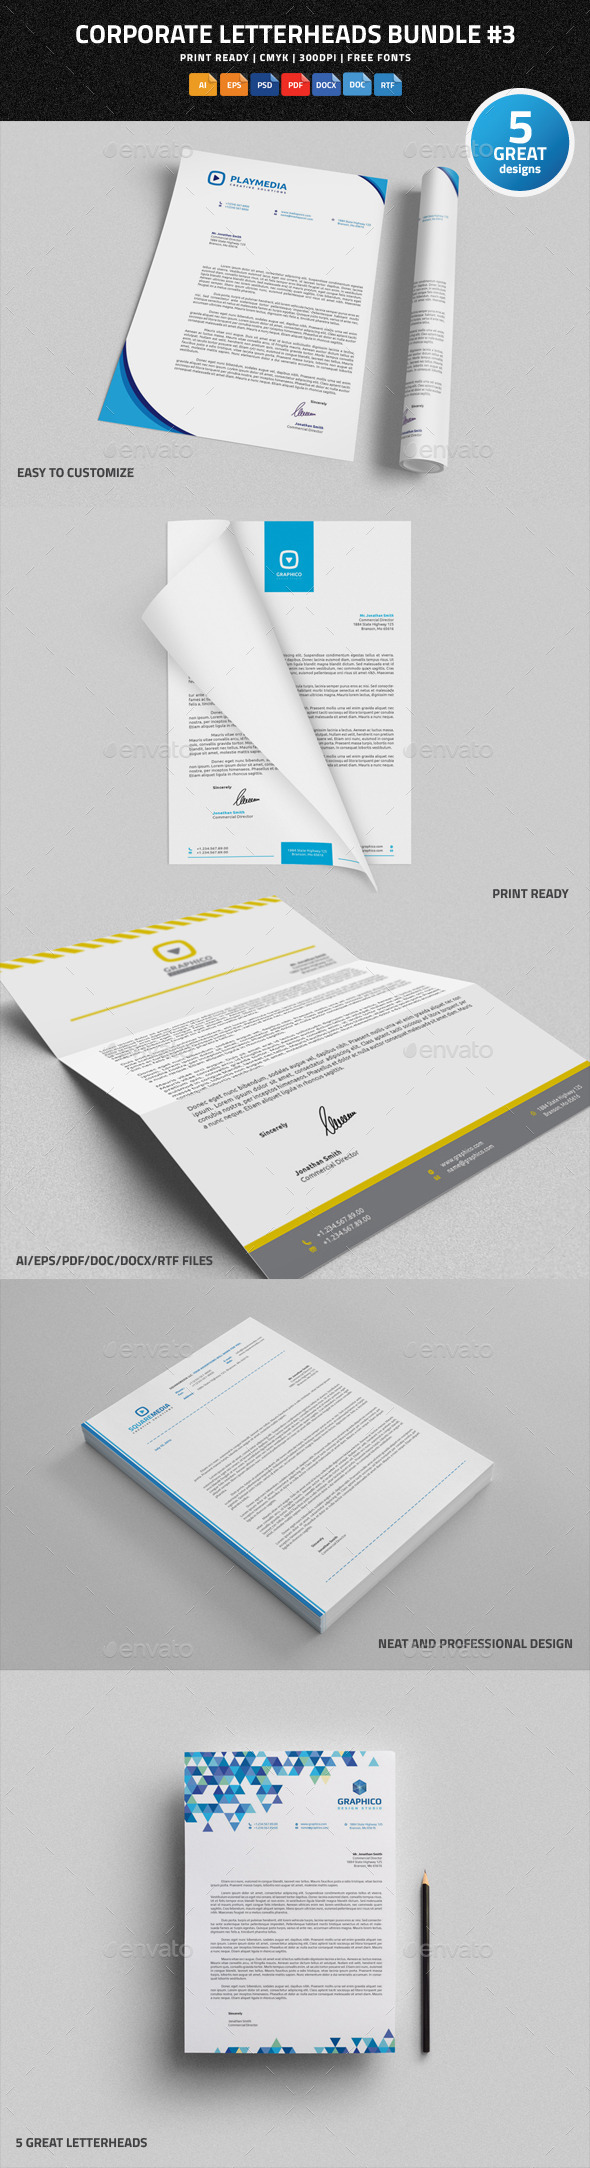 Corporate Letterheads Bundle #3 - Stationery Print Templates